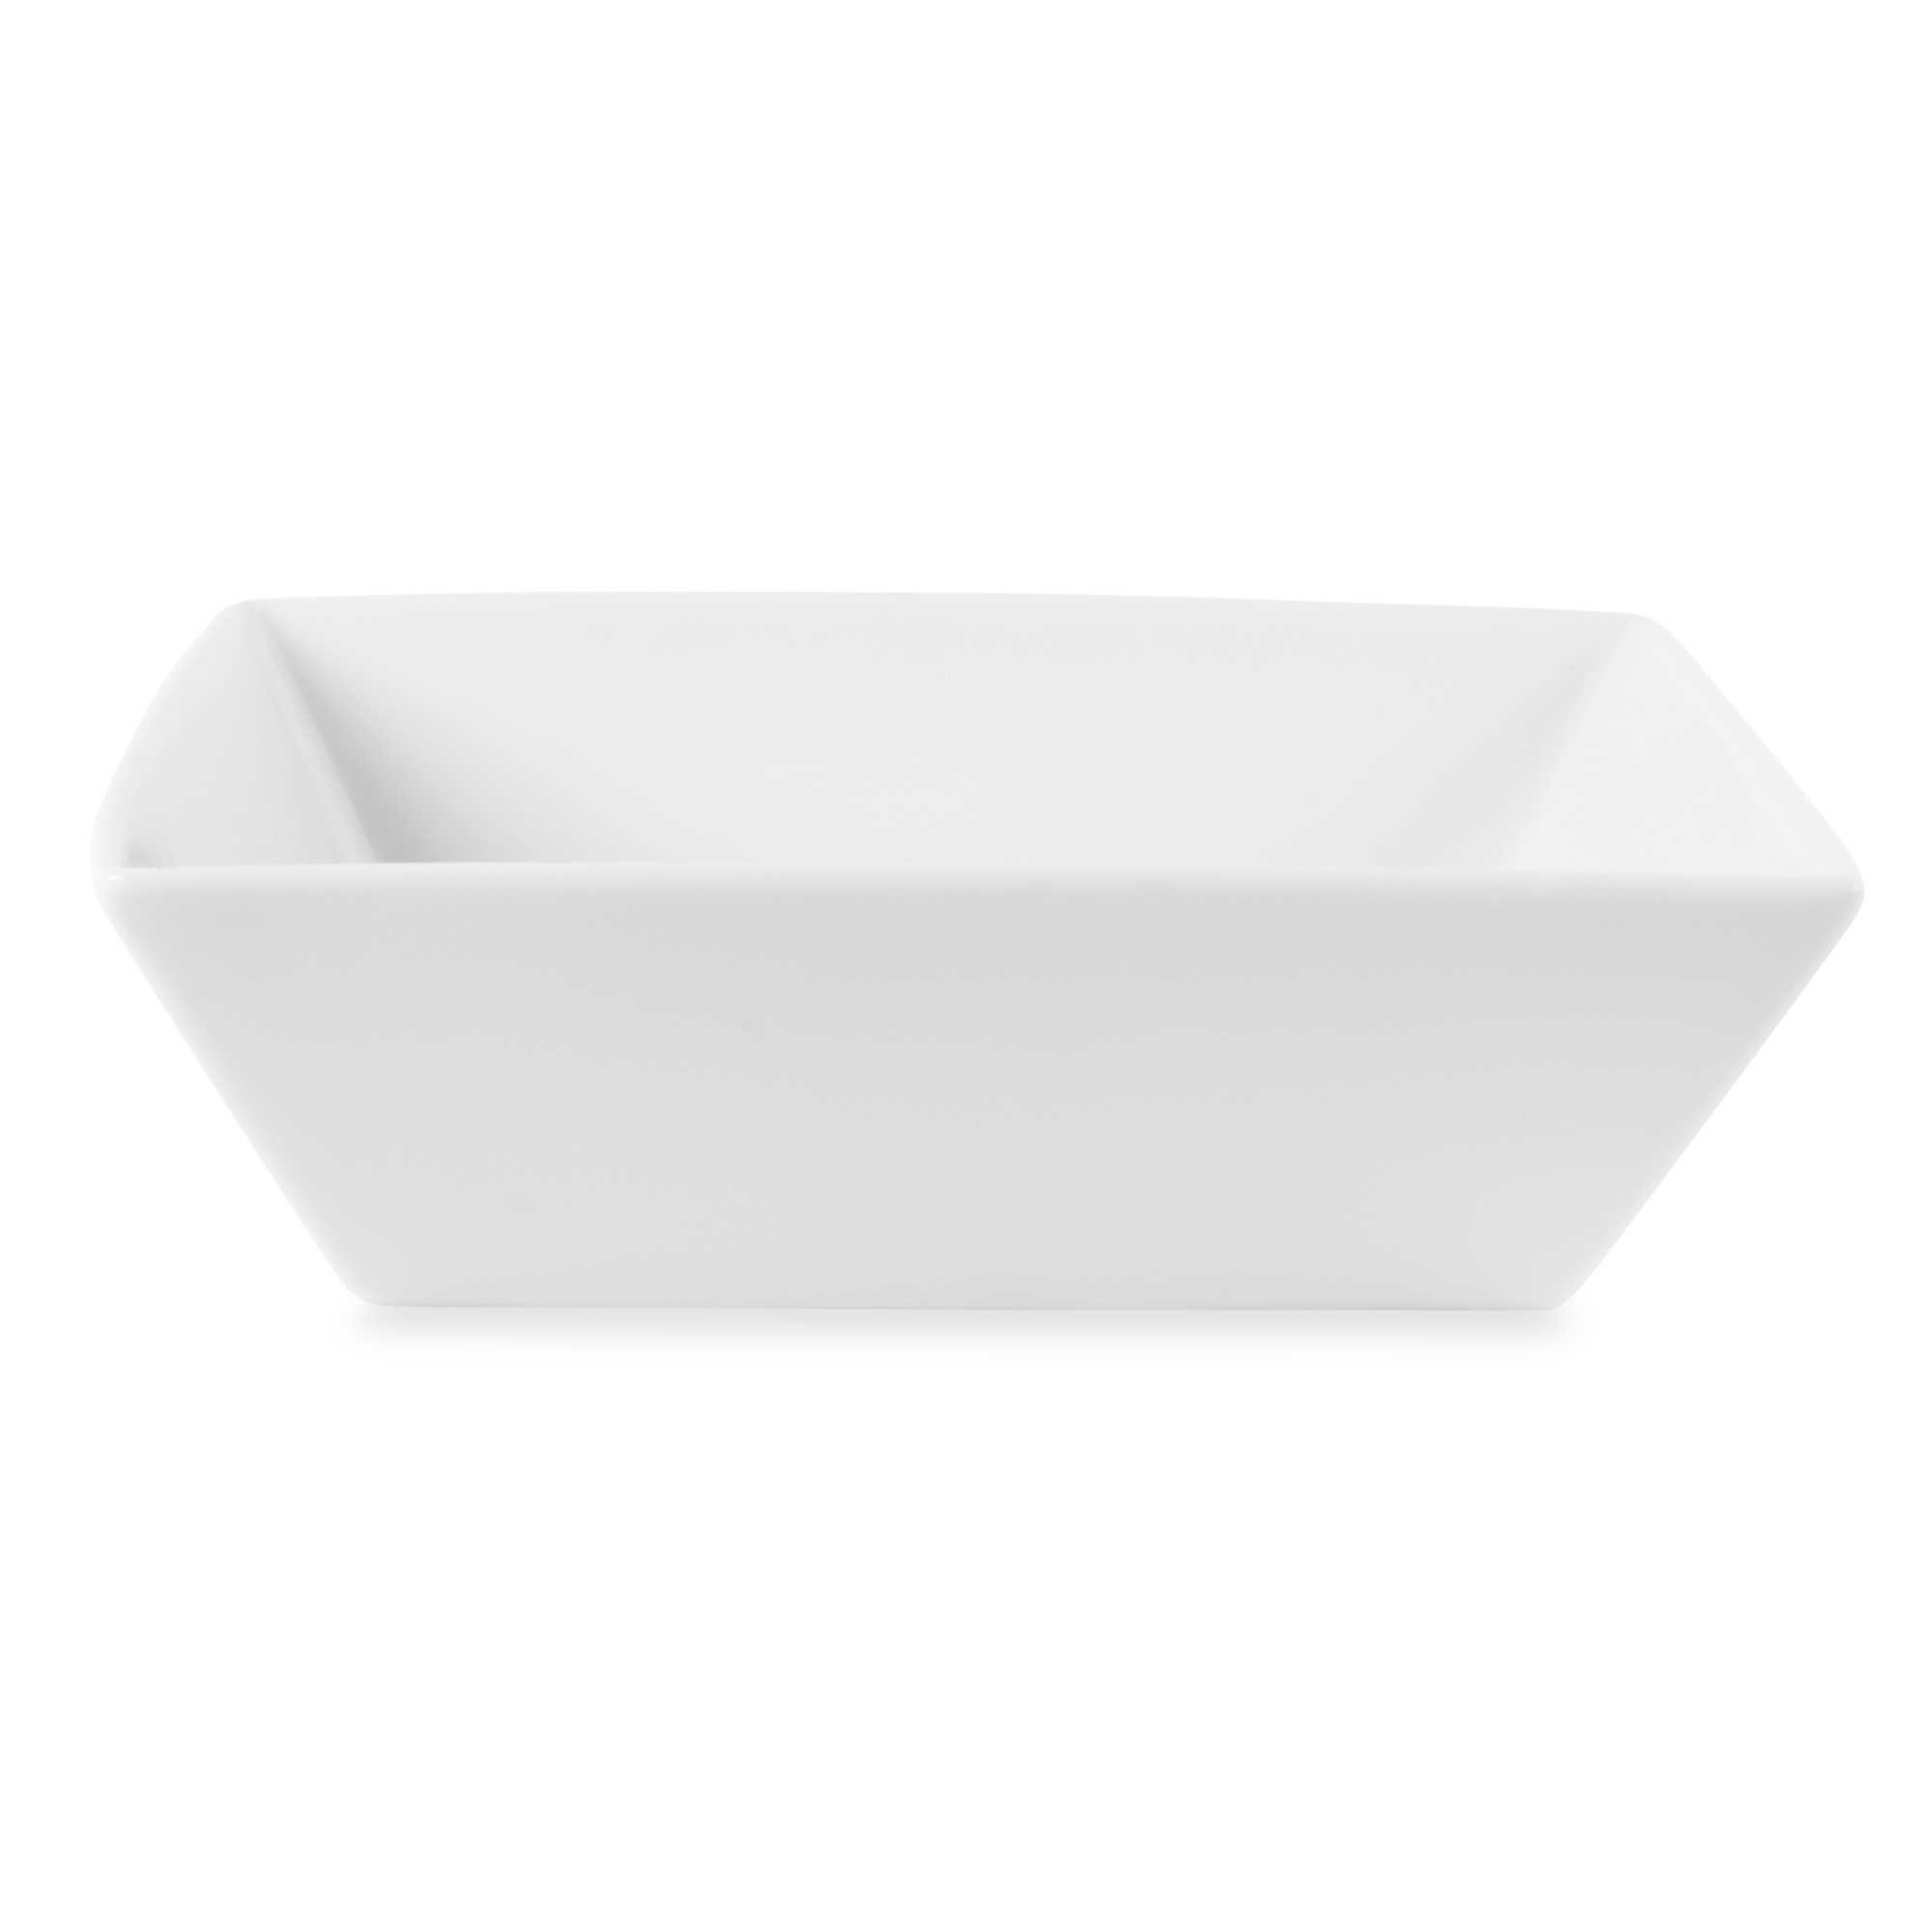 Fitz and Floyd Everyday White Porcelain Square Vegetable Bowl, Classic And Functional Dinnerware